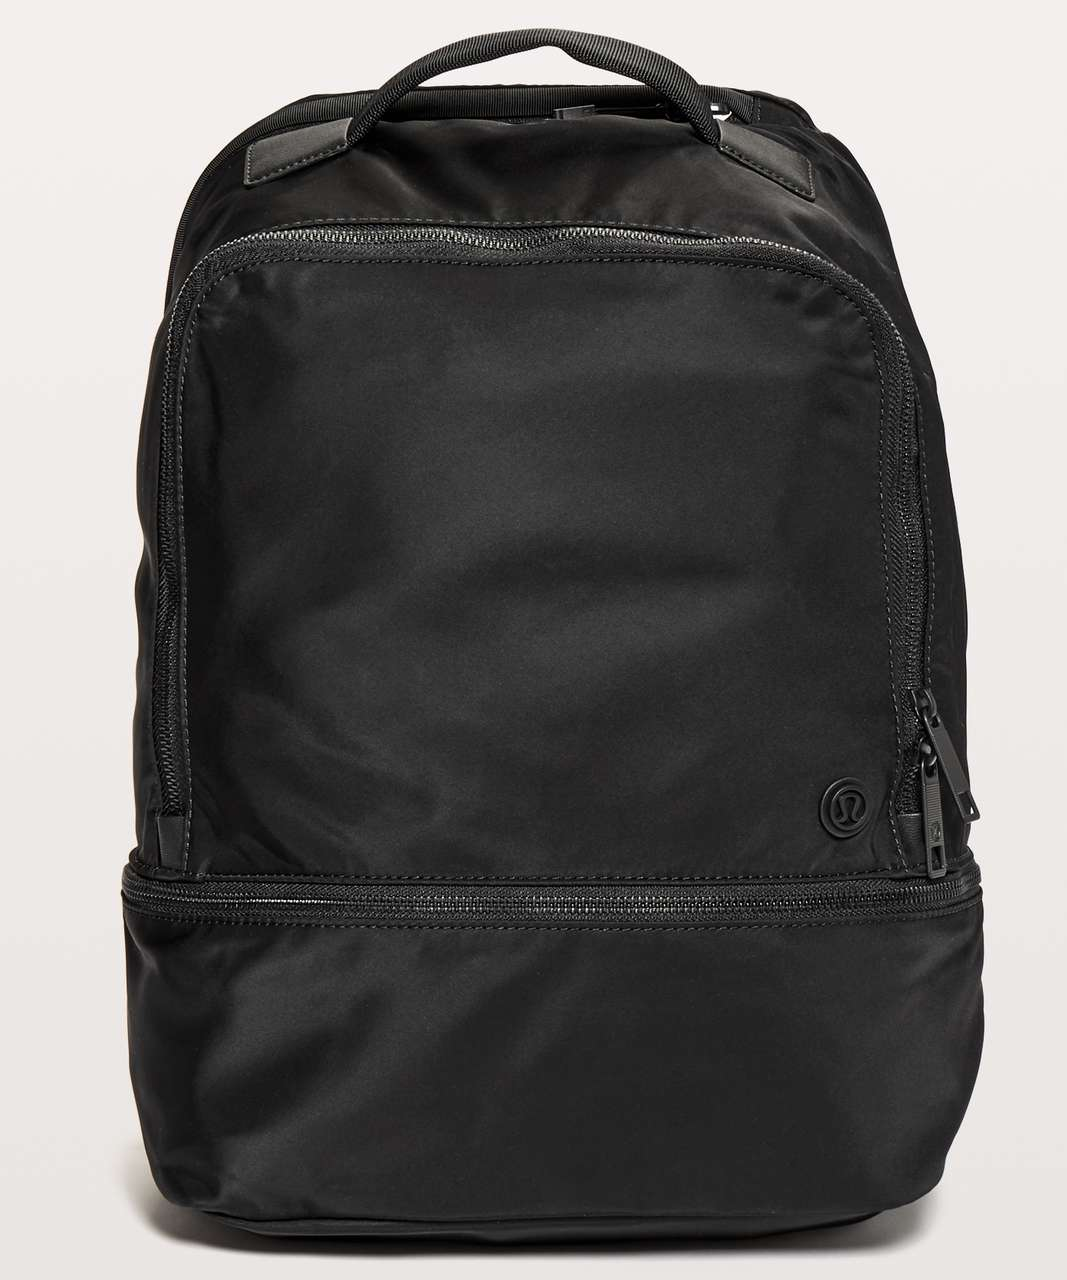 Lululemon City Adventurer Backpack *17L - Black (Second Release)